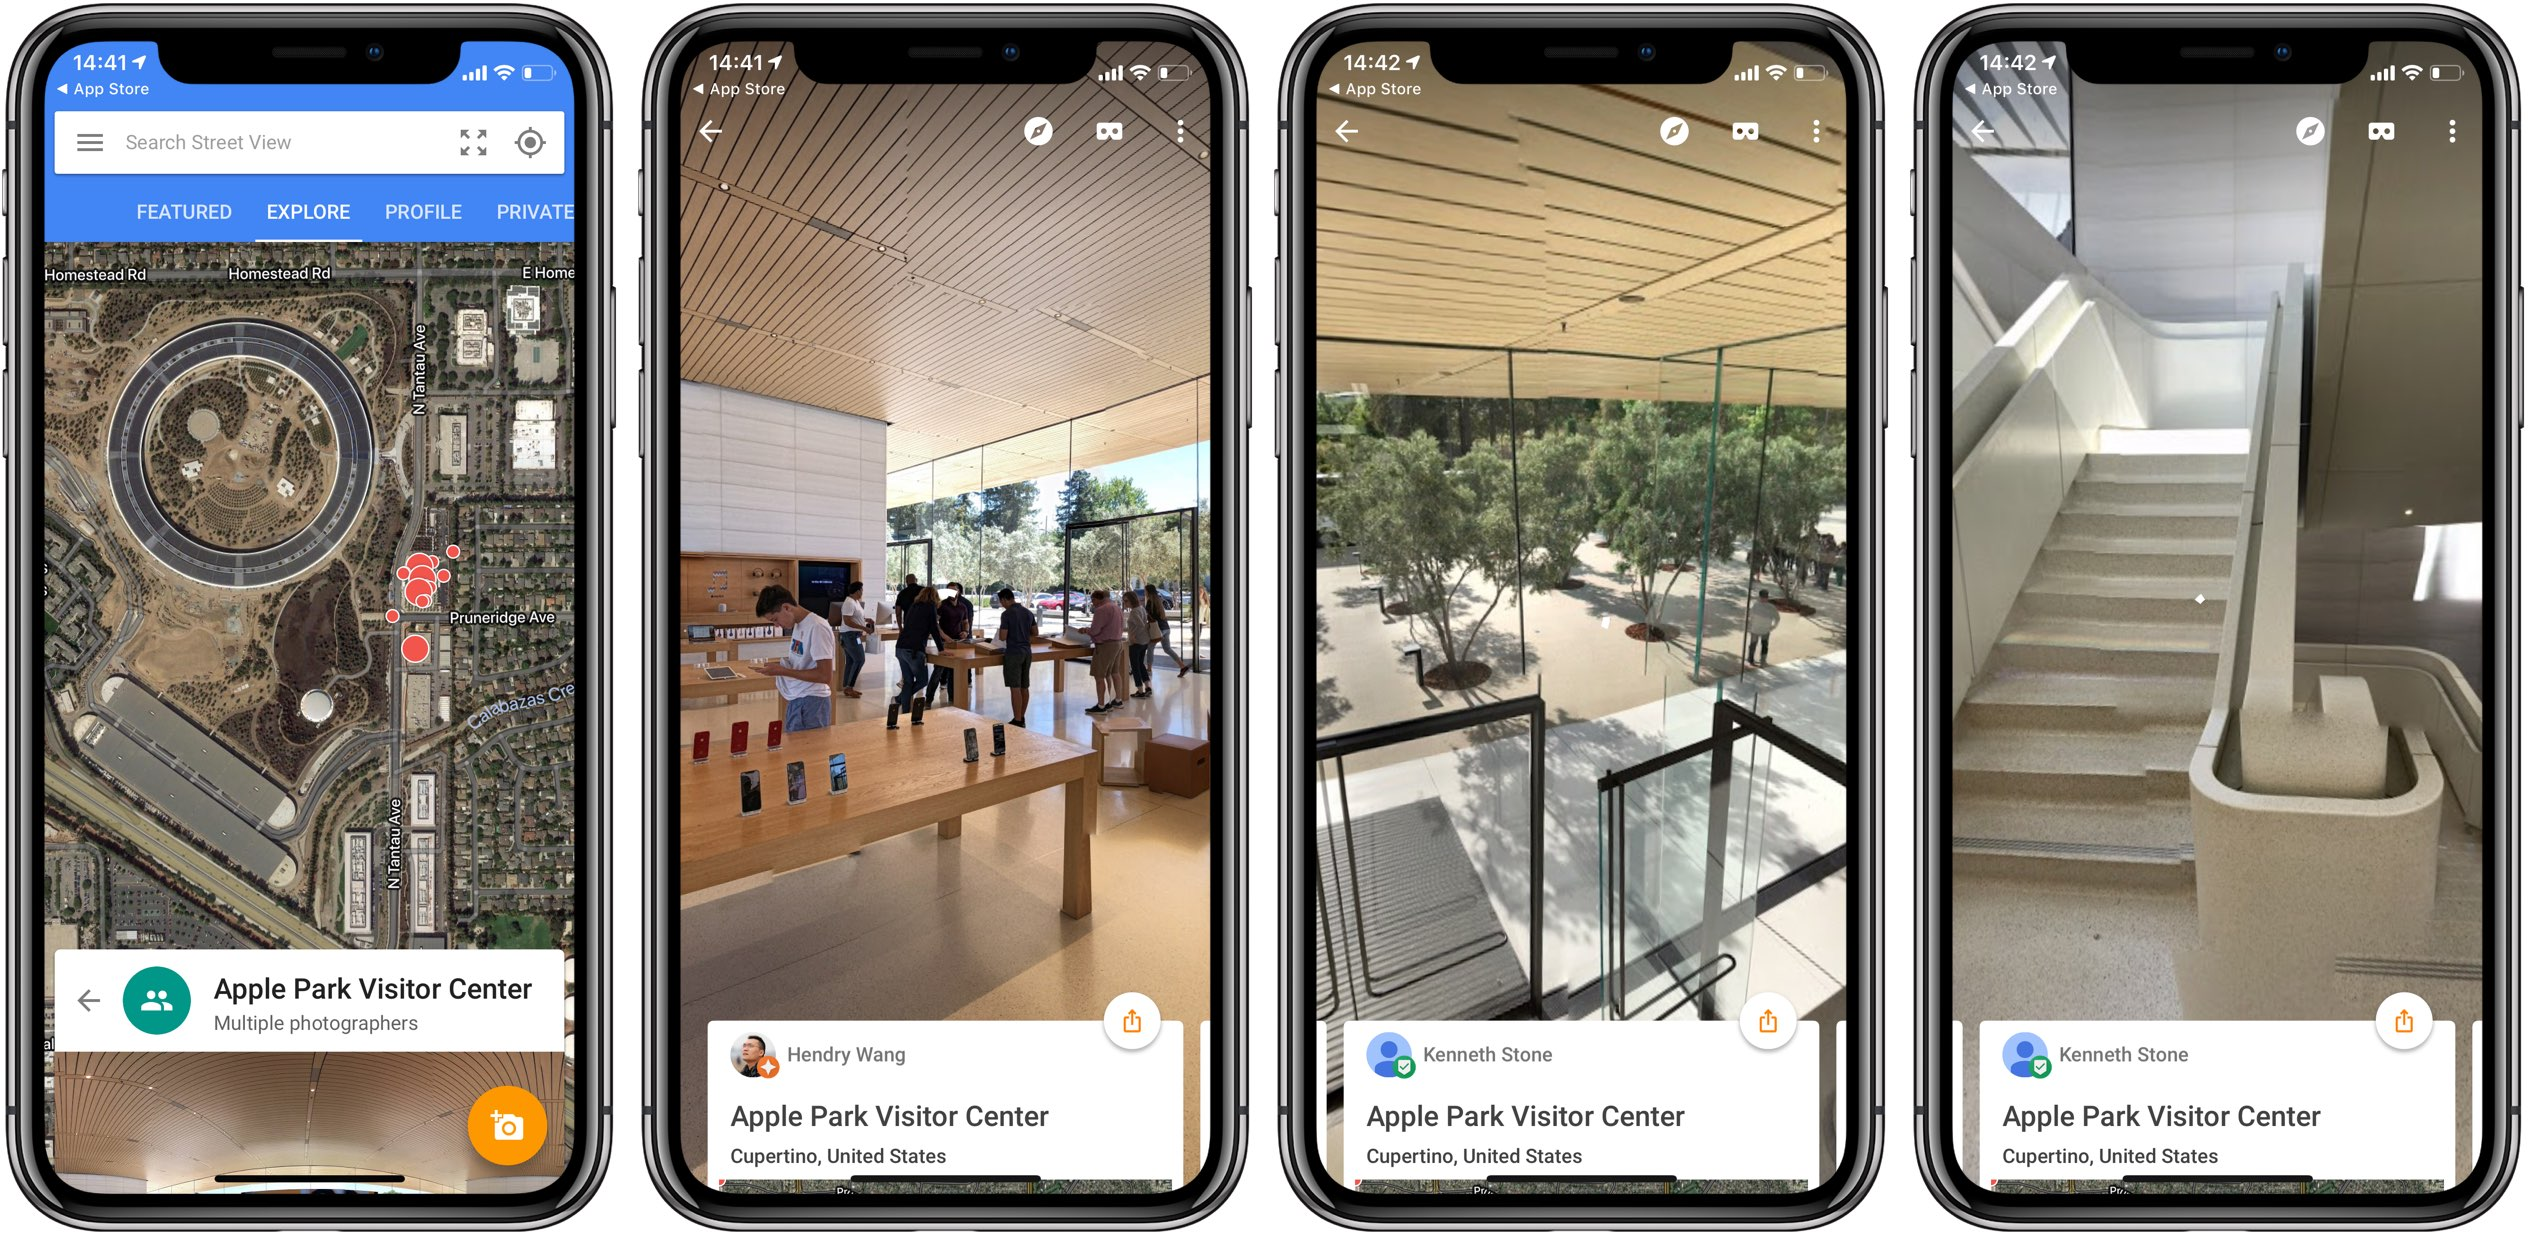 Google finally updates its Street View iOS app with iPhone X support